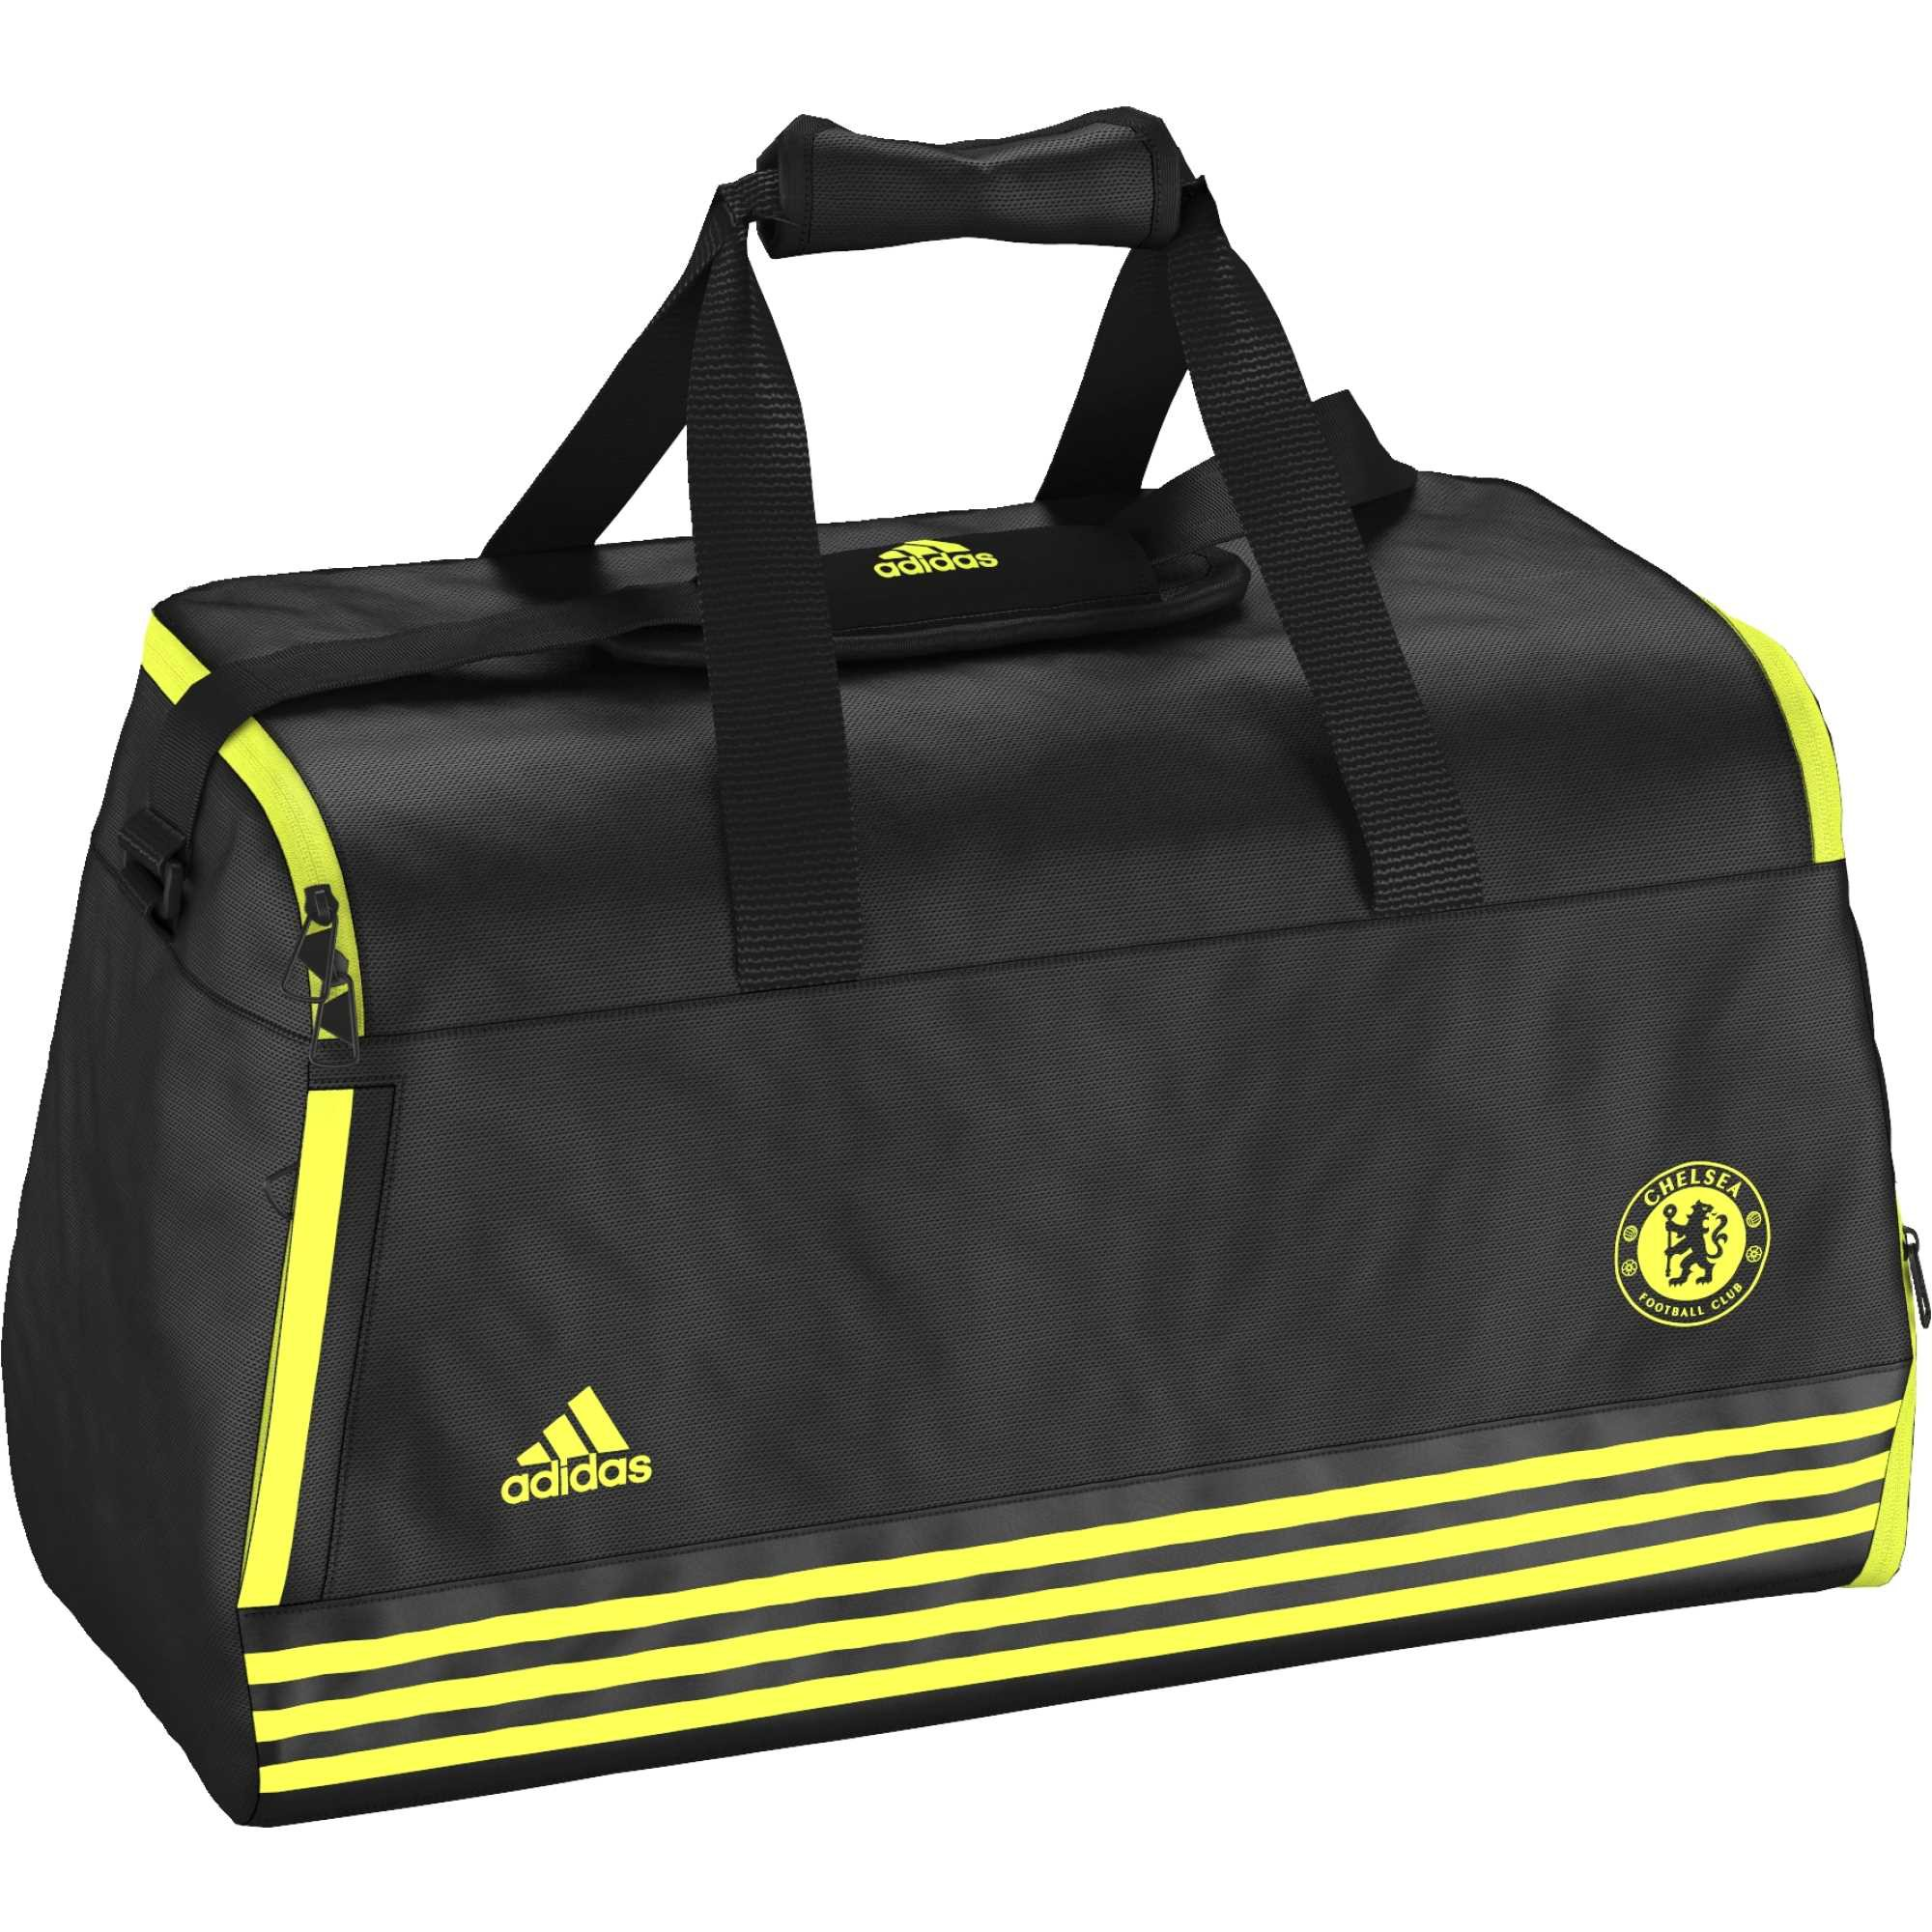 20162017 Chelsea Adidas Team Bag (Black)